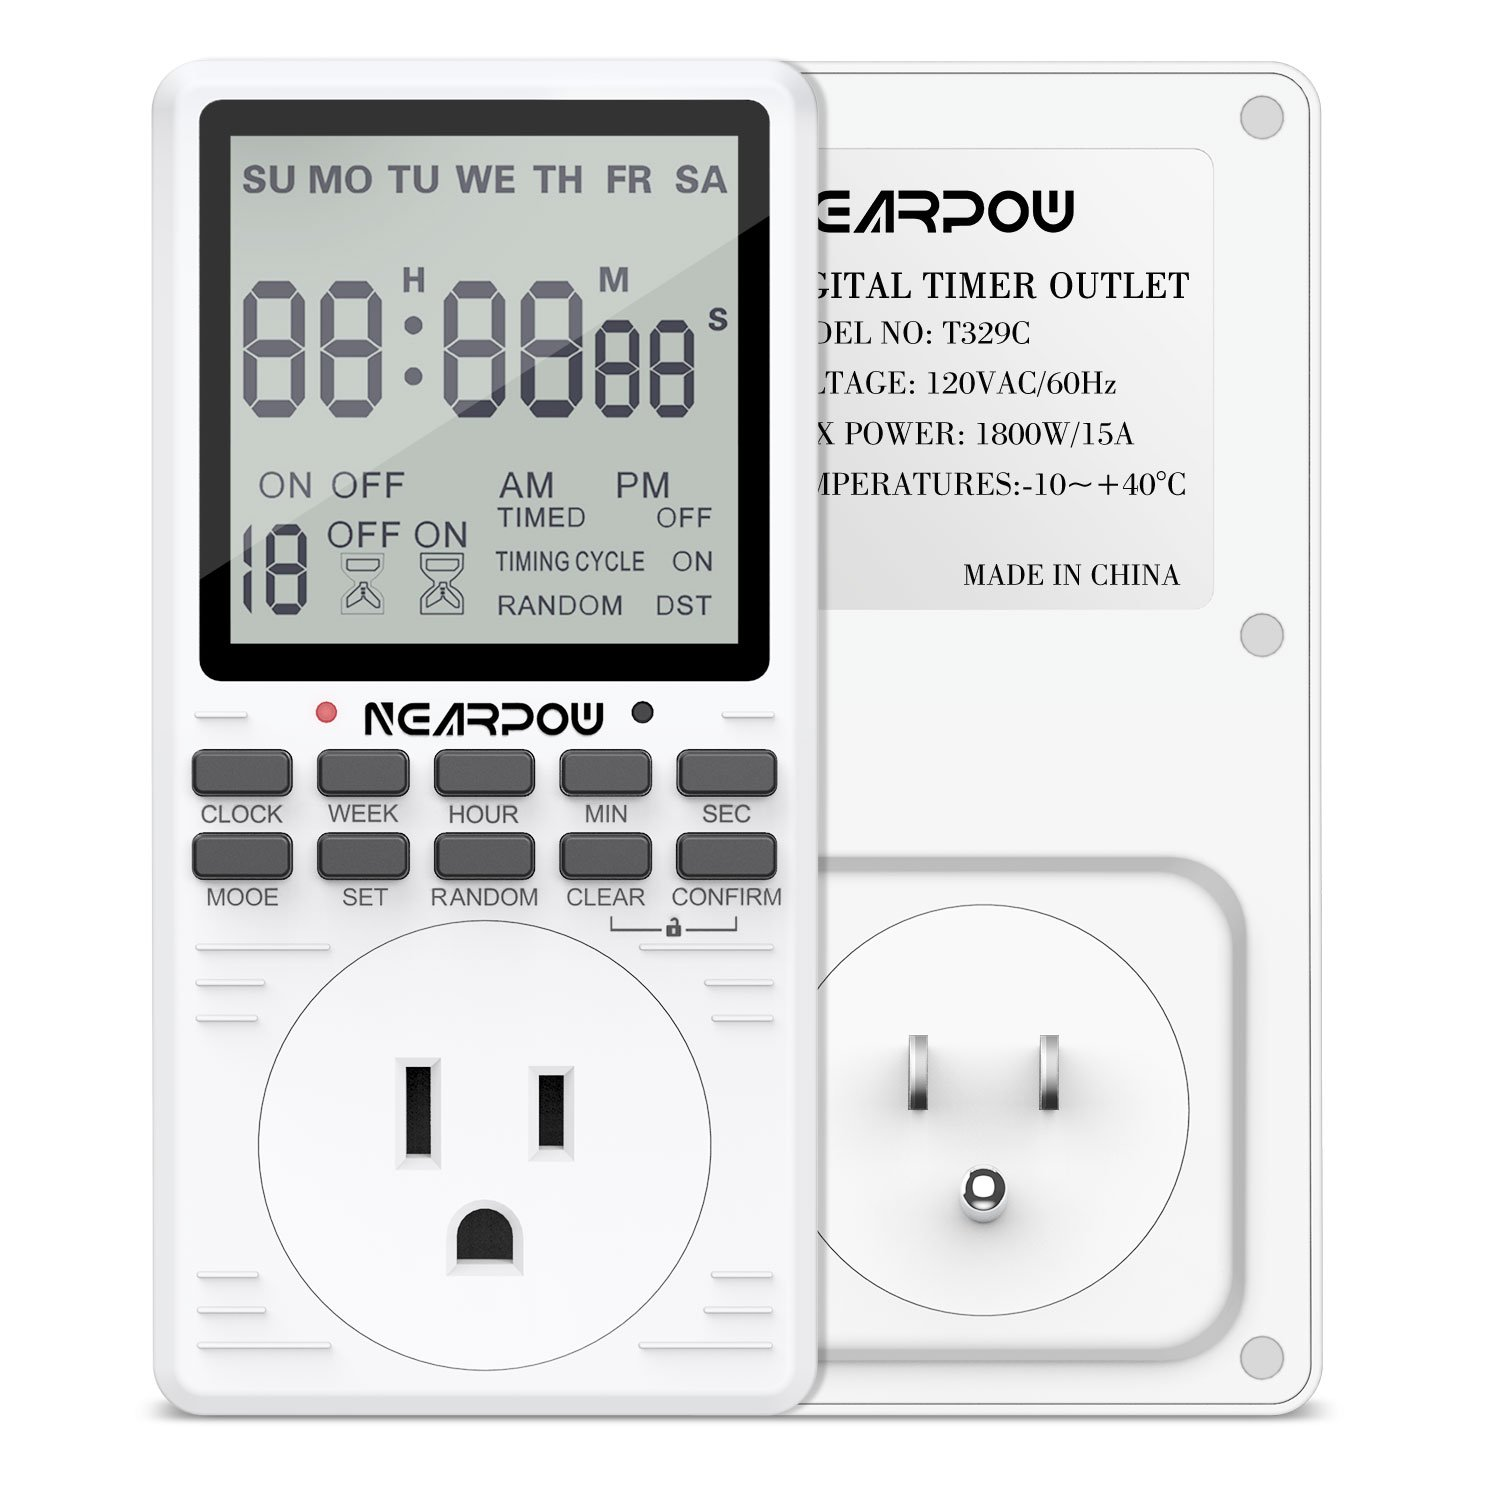 Timer Outlet Nearpow Multifunctional 7 Day Cycle Programmable Plug Innovative Circuit Ict120124a Comm Series 120vac 12vdc 4 Amp In Digital Switch For Appliances Extra Large Lcd Display 19 Settings Seconds Interval 15a 1800w